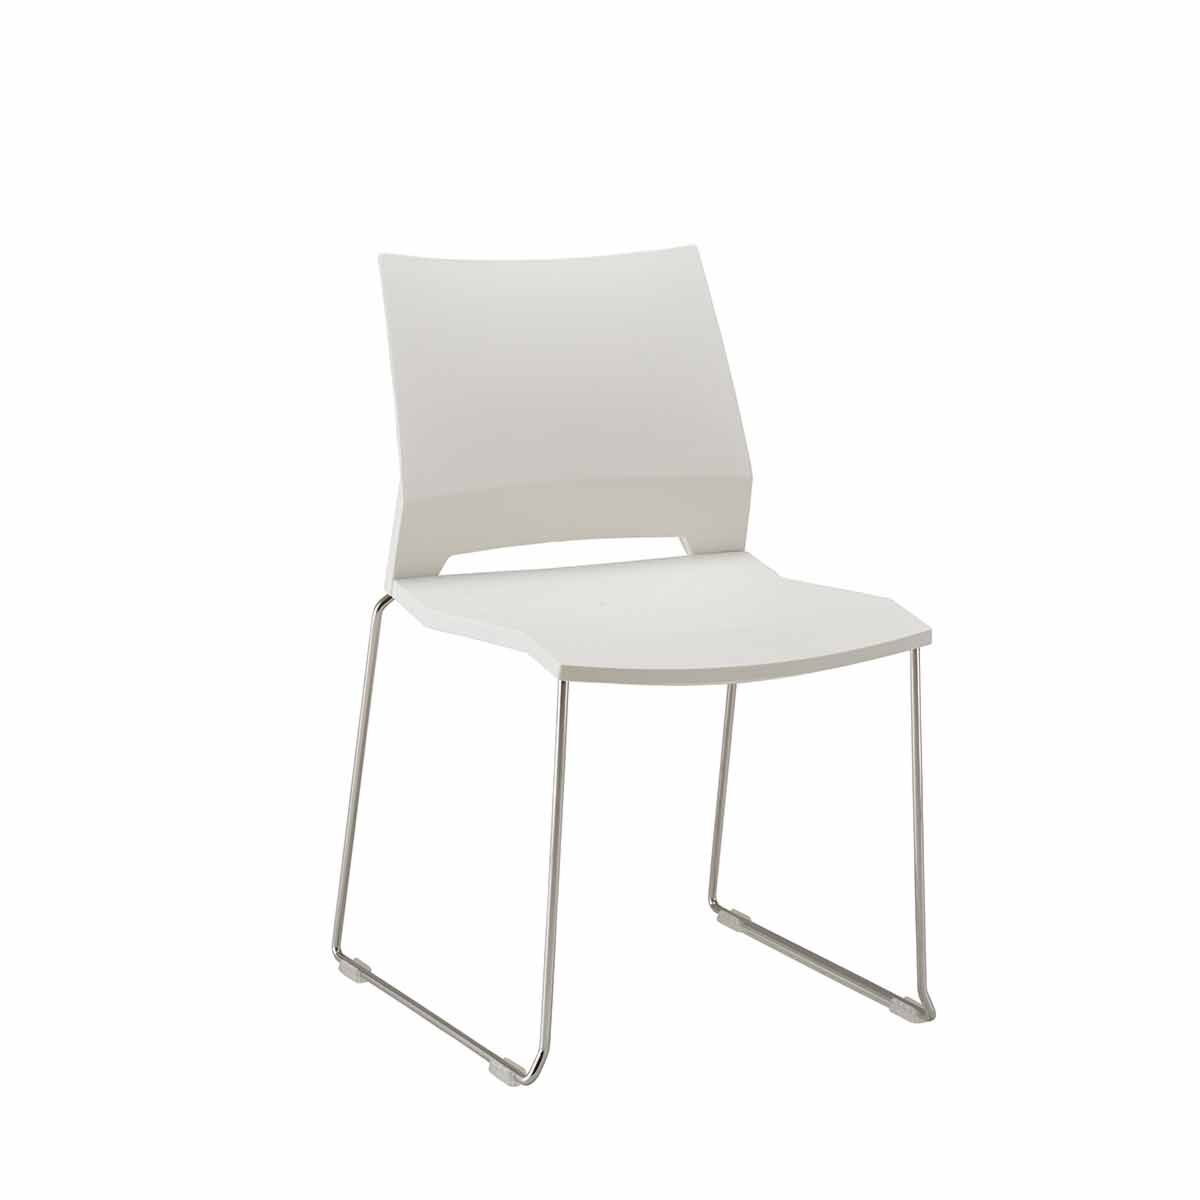 TC Office Rome Skid Side Chair White